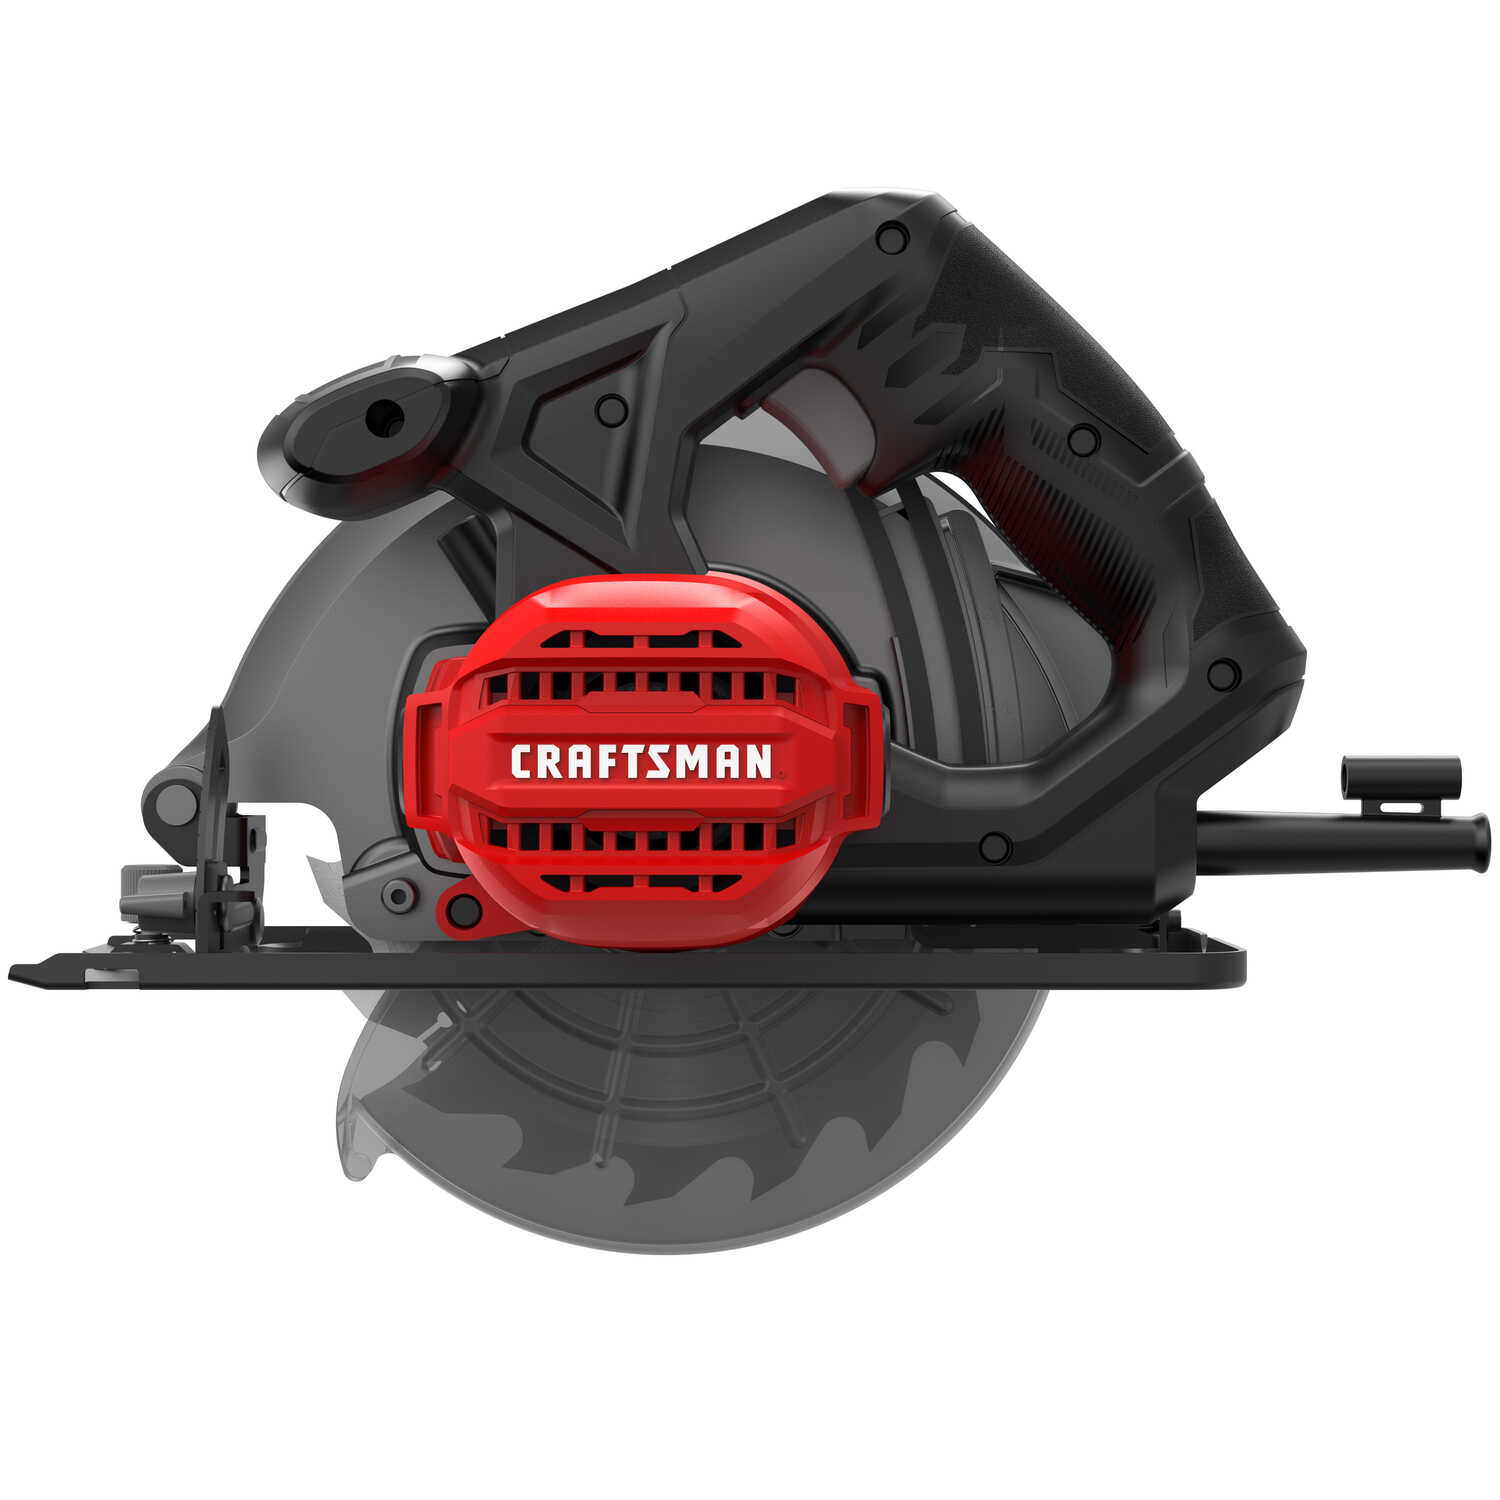 Craftsman  7-1/4 in. Corded  13 amps Circular Saw  5300 rpm